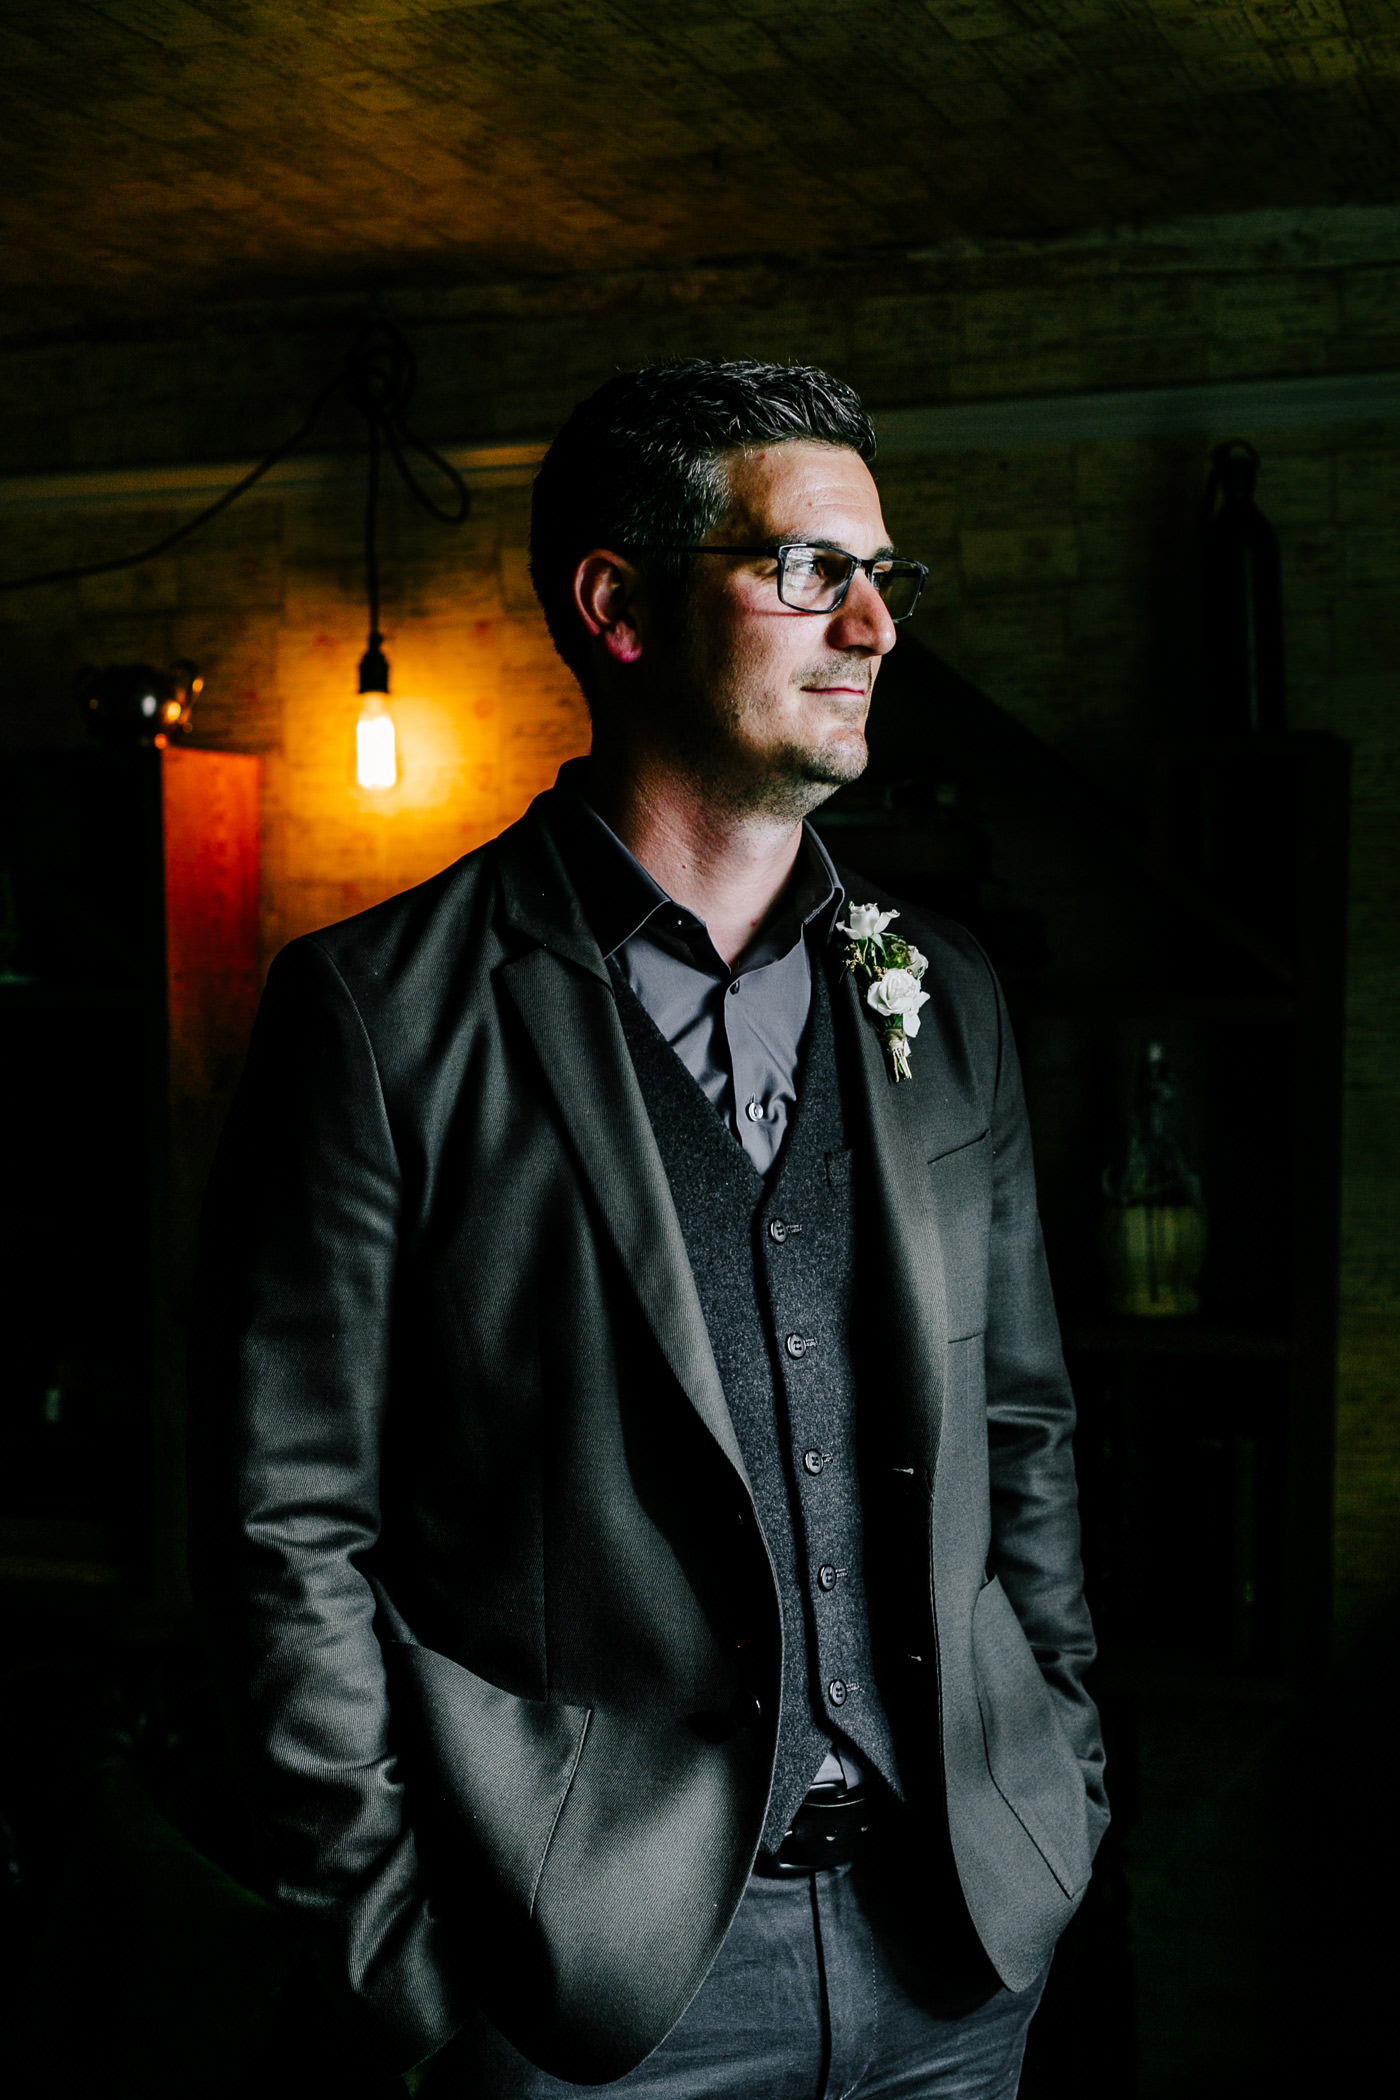 The-bell-in-Ticehurst-pub-kent-wedding-photographer-London-Epic-Love-Story-063